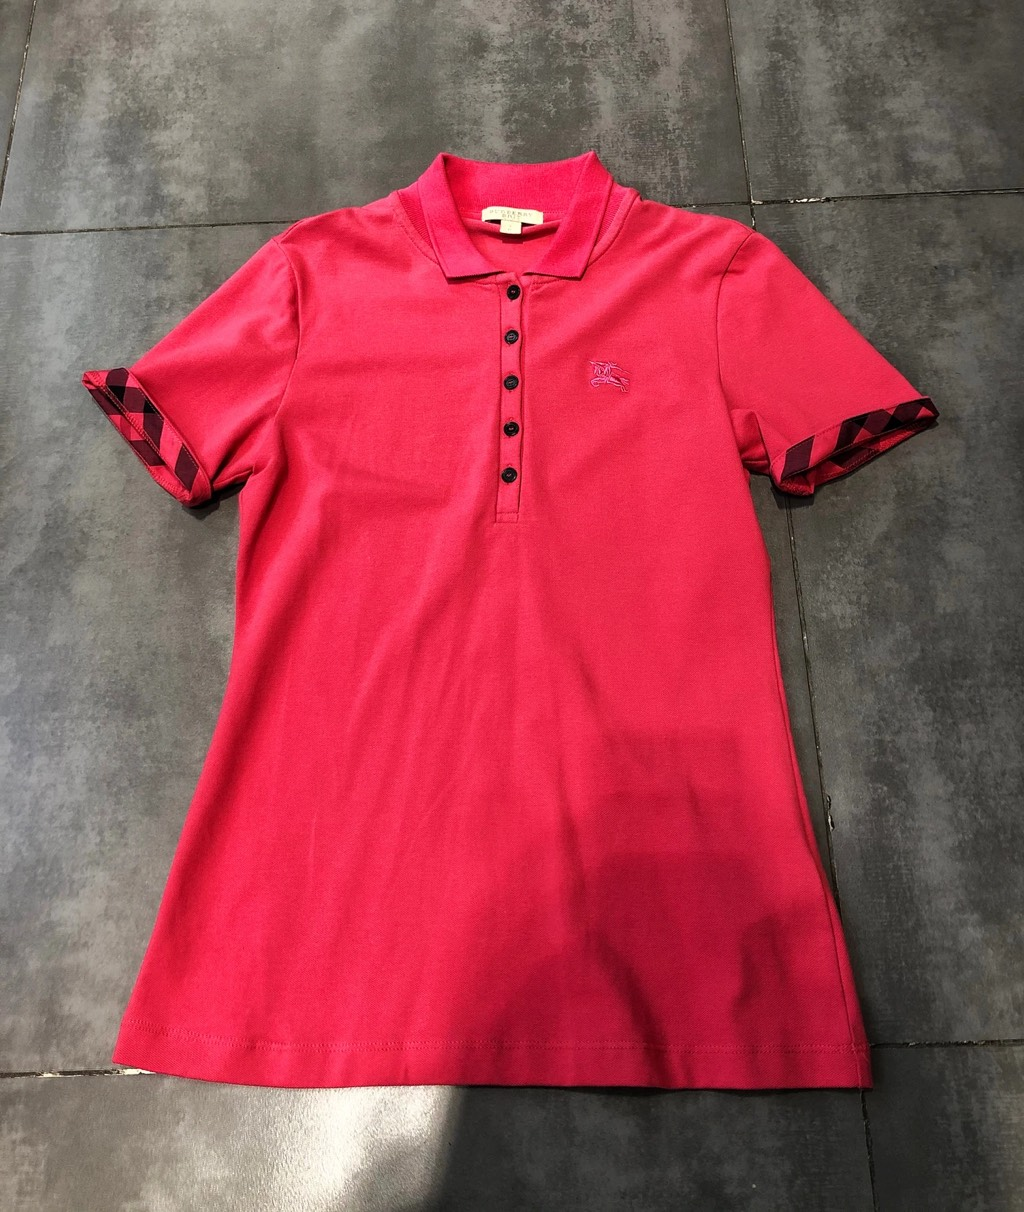 BRAND-NEW BURBERRY POLO FOR WOMENBurberry1